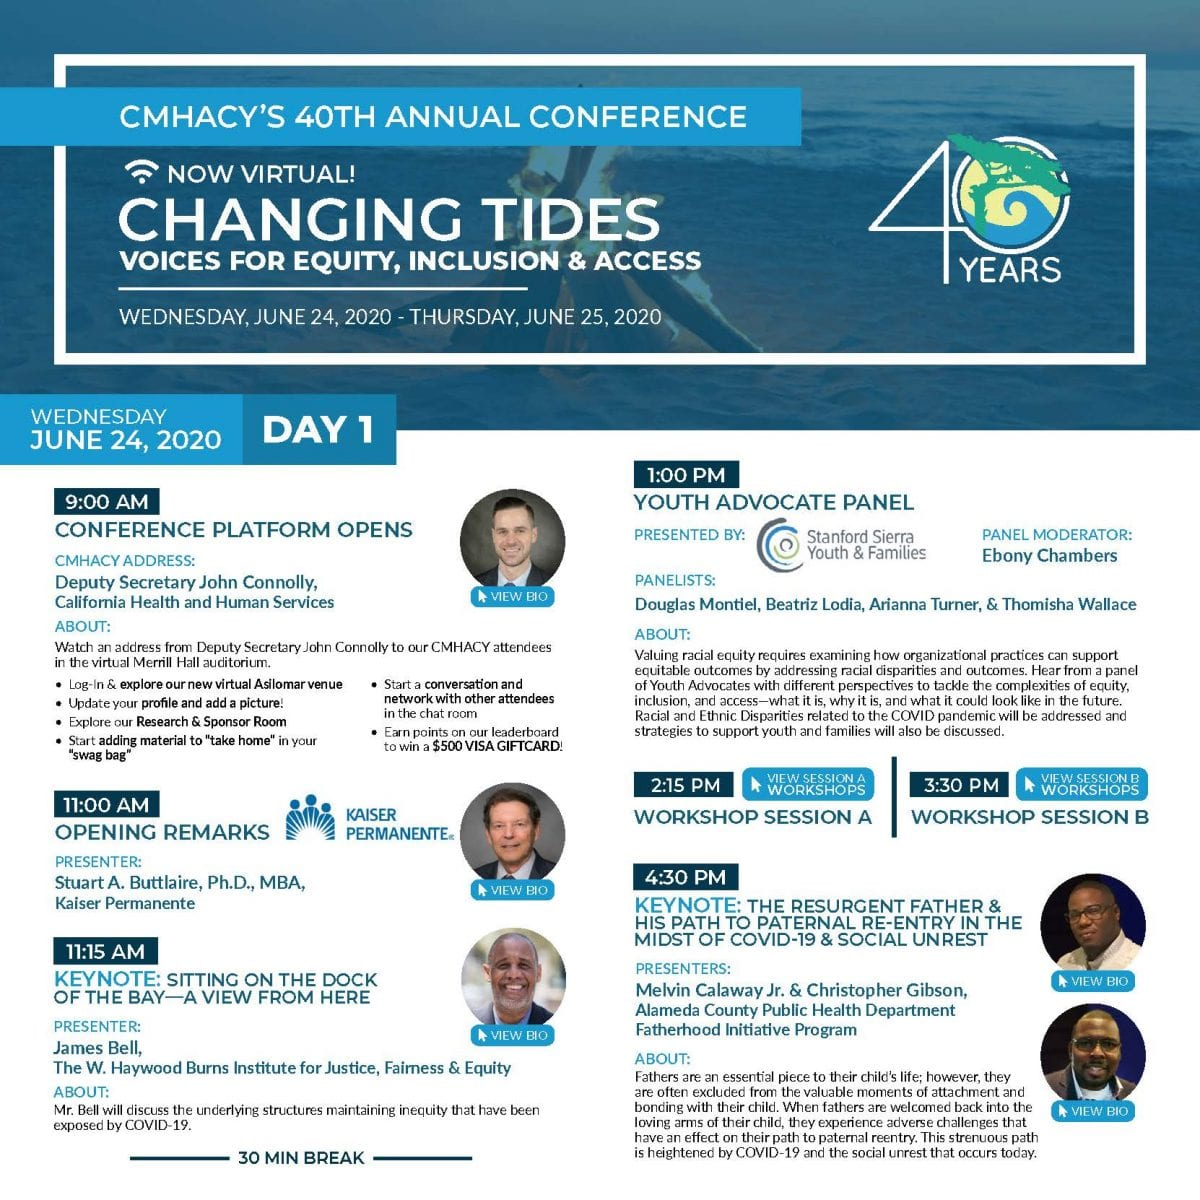 CMHACY 40th Annual Conference